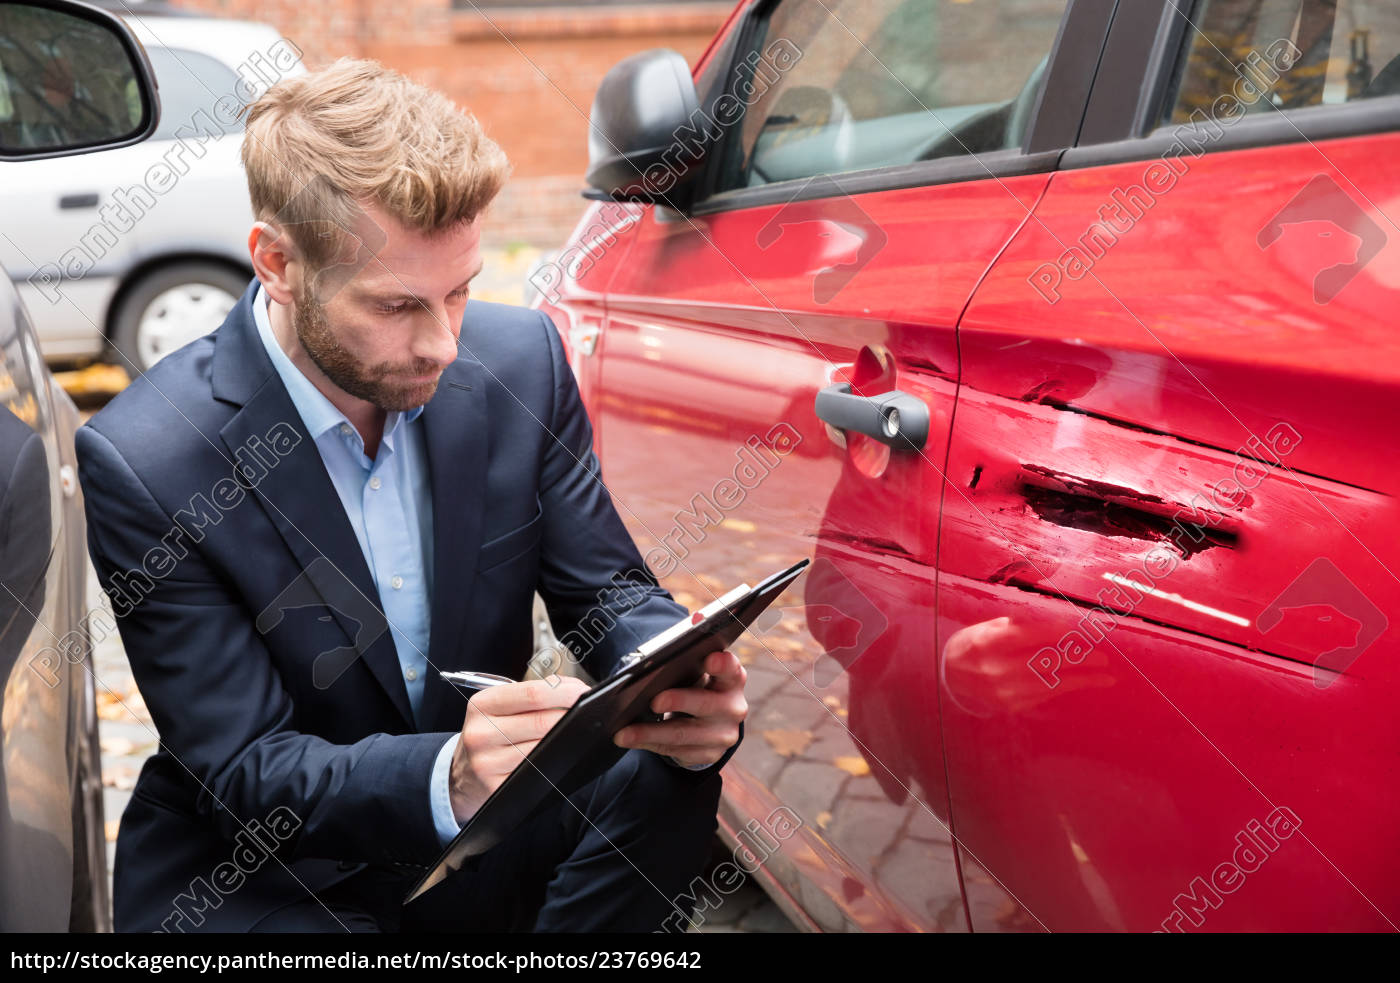 Car Insurance After Accident >> Royalty Free Image 23769642 Insurance Agent Examining Car After Accident